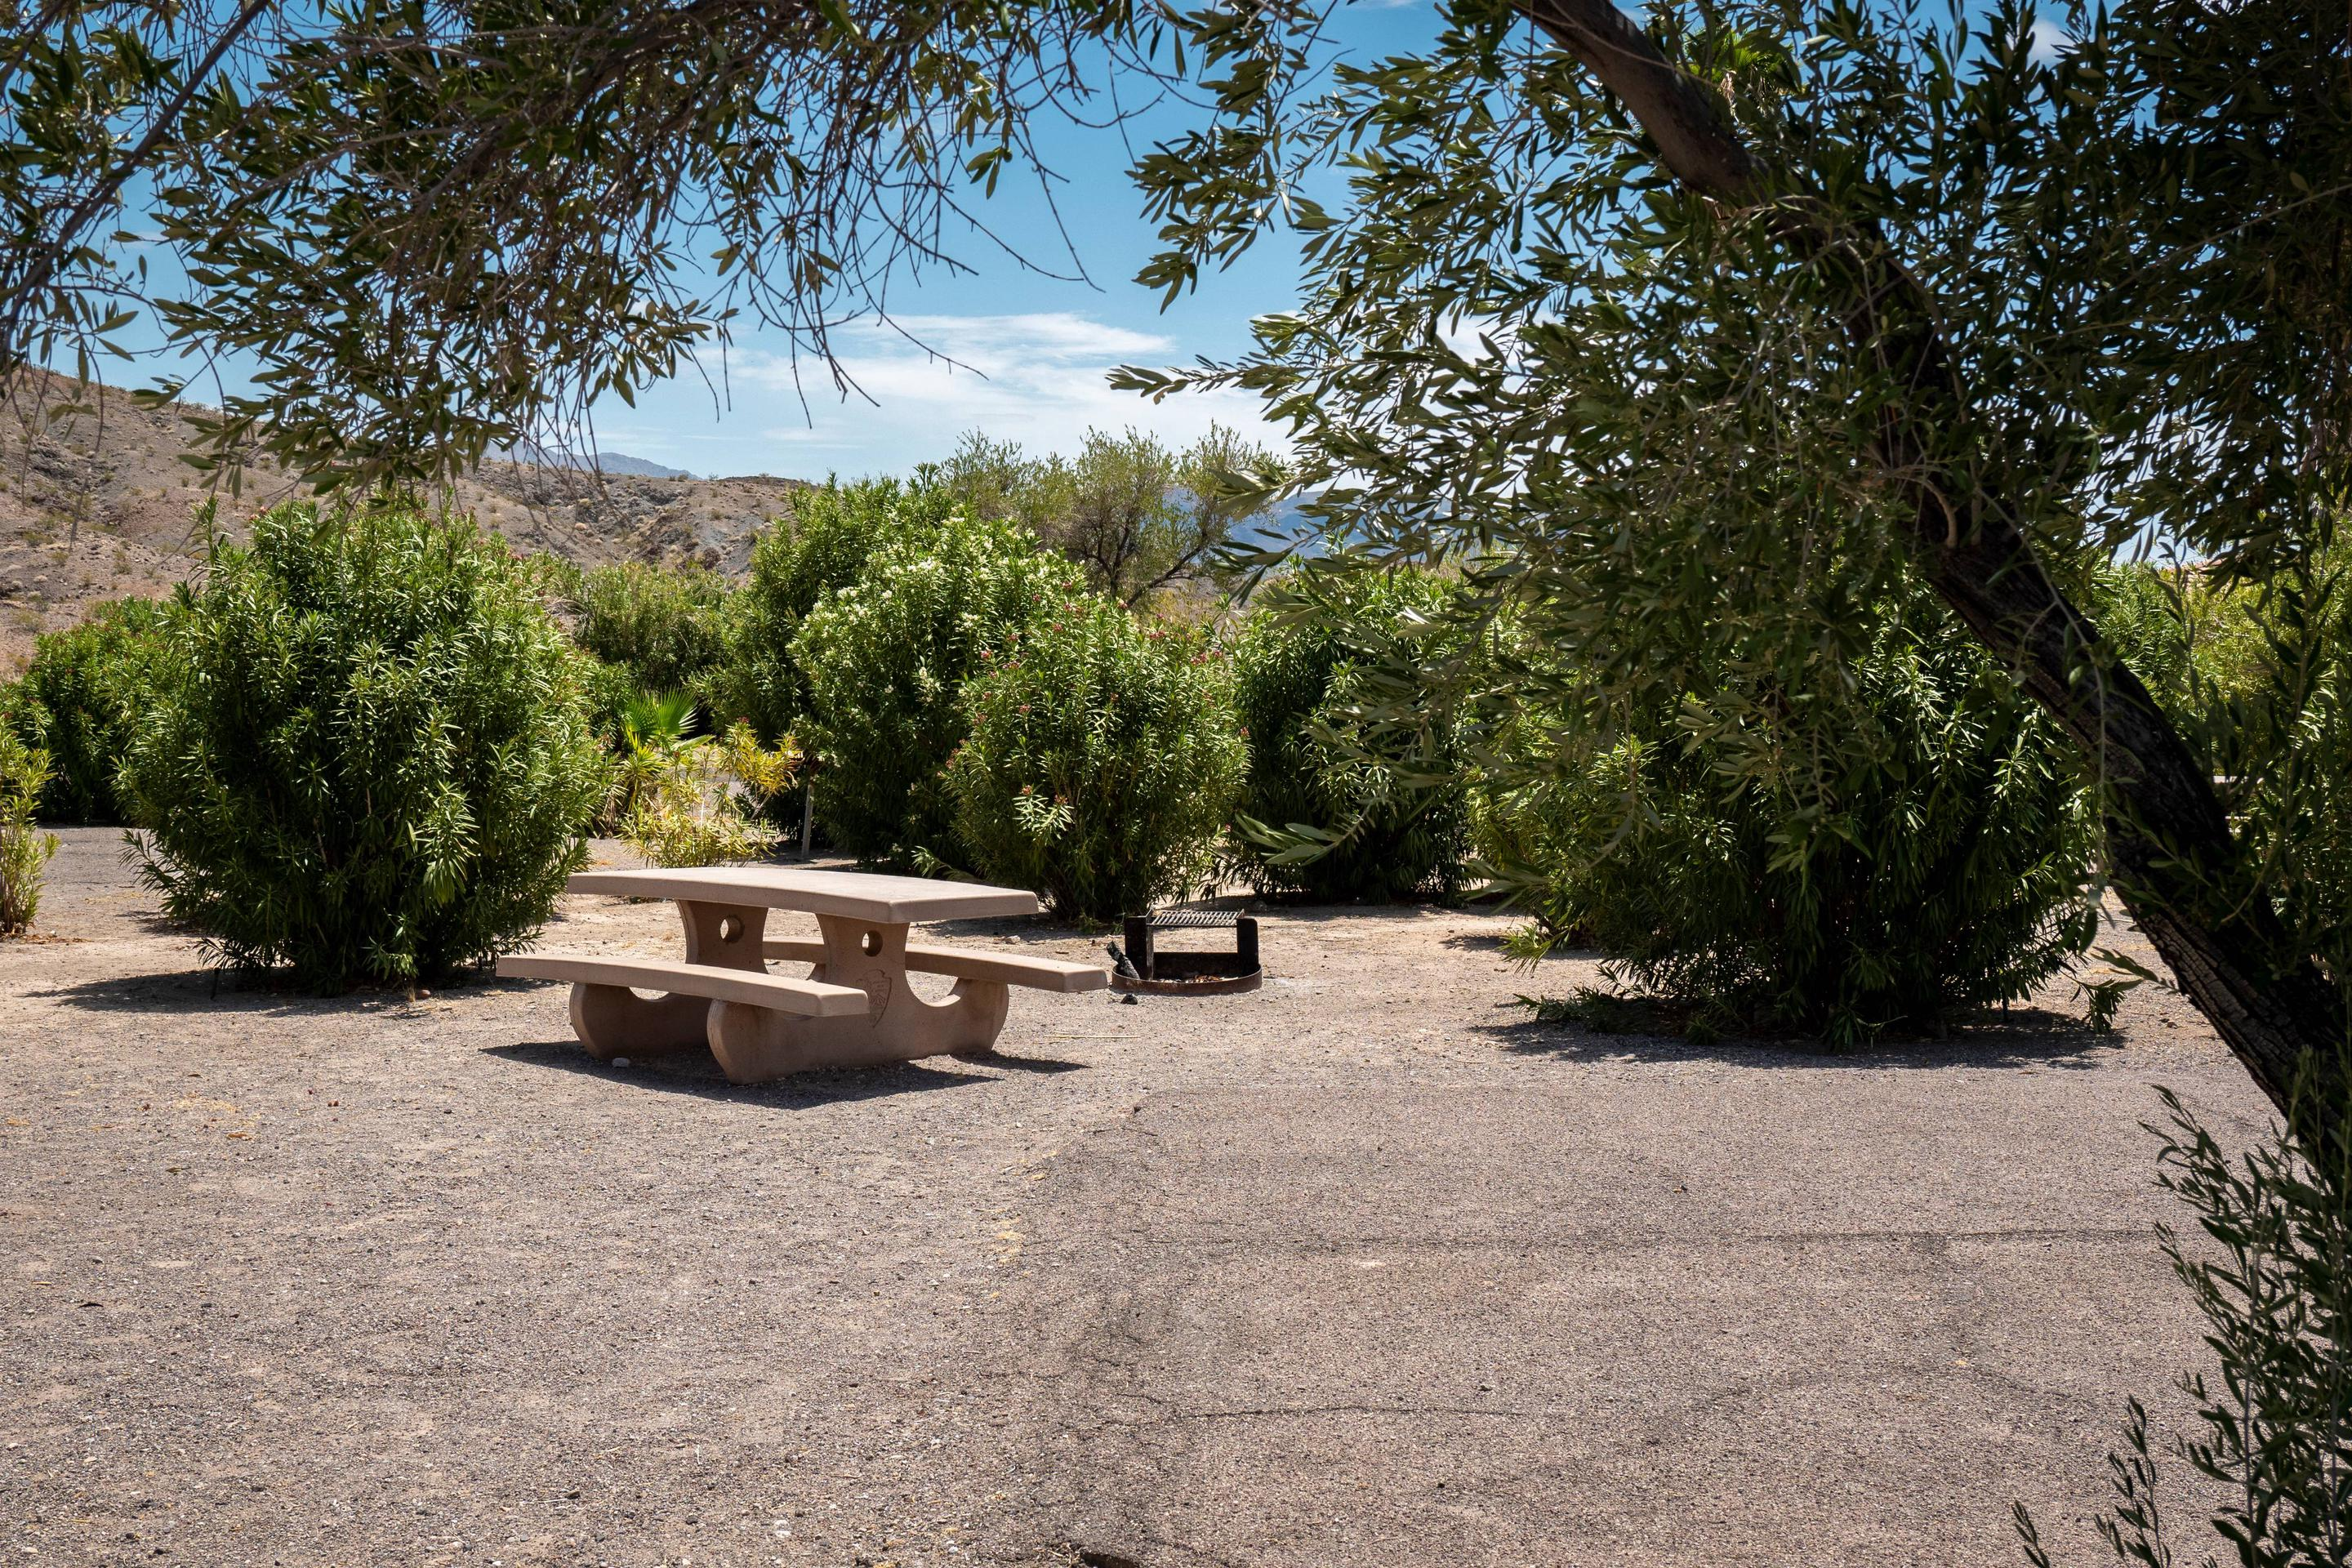 Campsite located in a desert setting6Callville Bay Campground